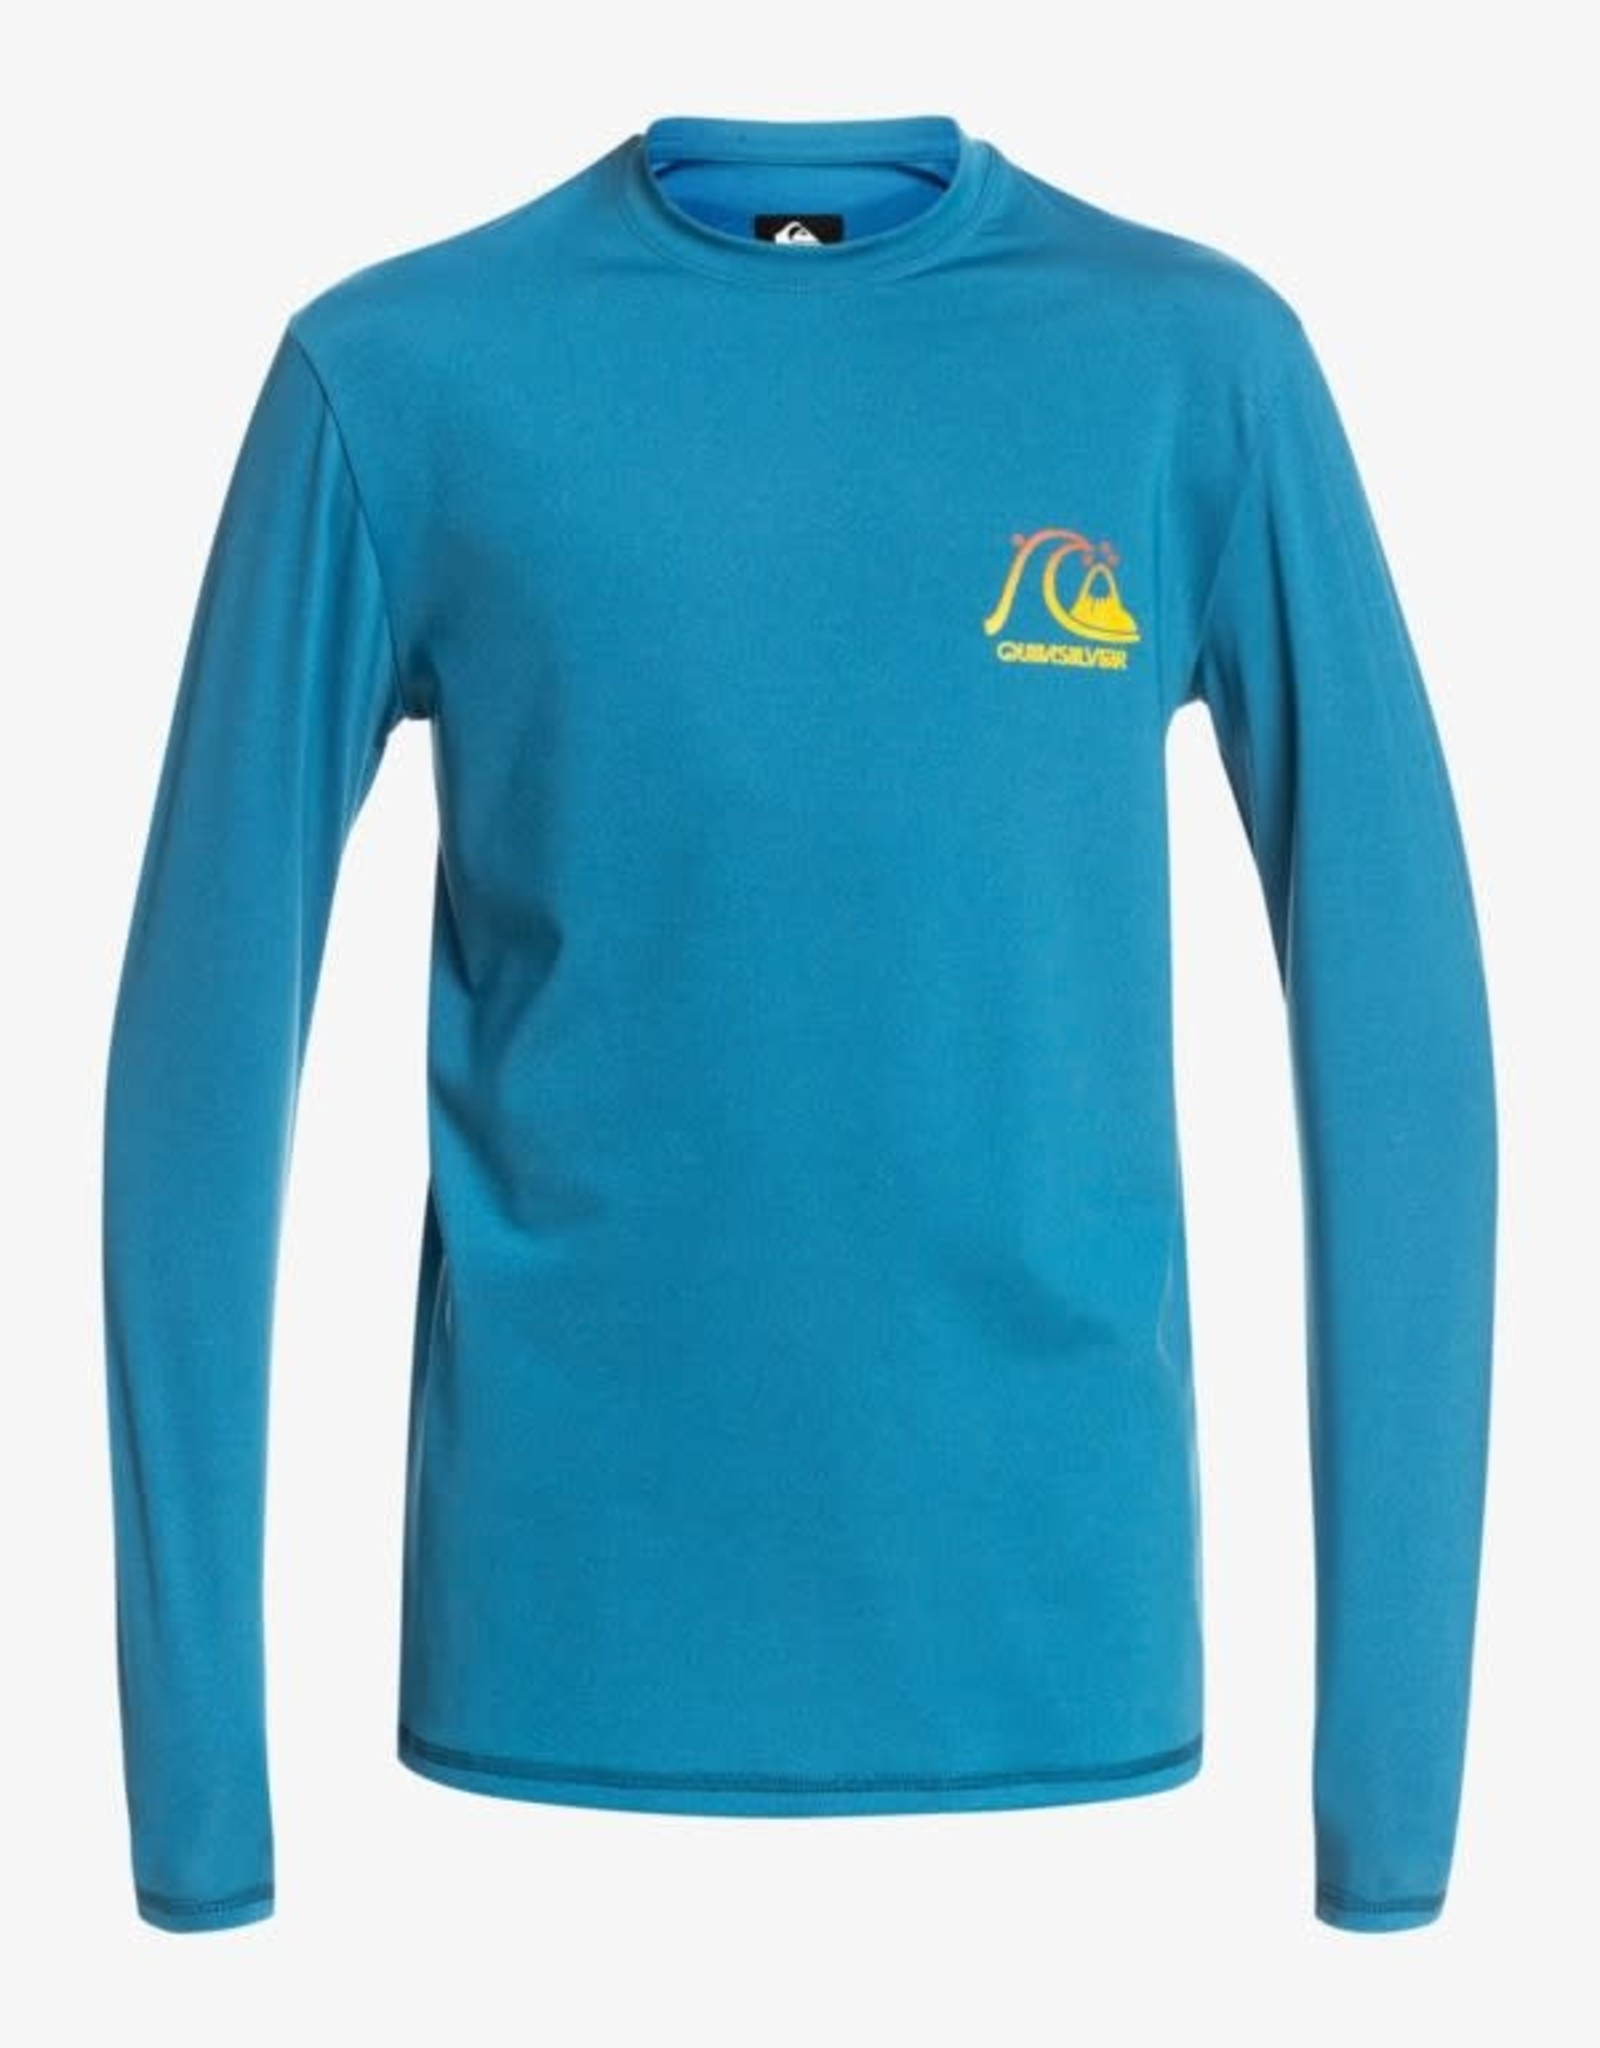 quiksilver Quiksilver Youth Heritage Heather L/S R/G EQBWR03191